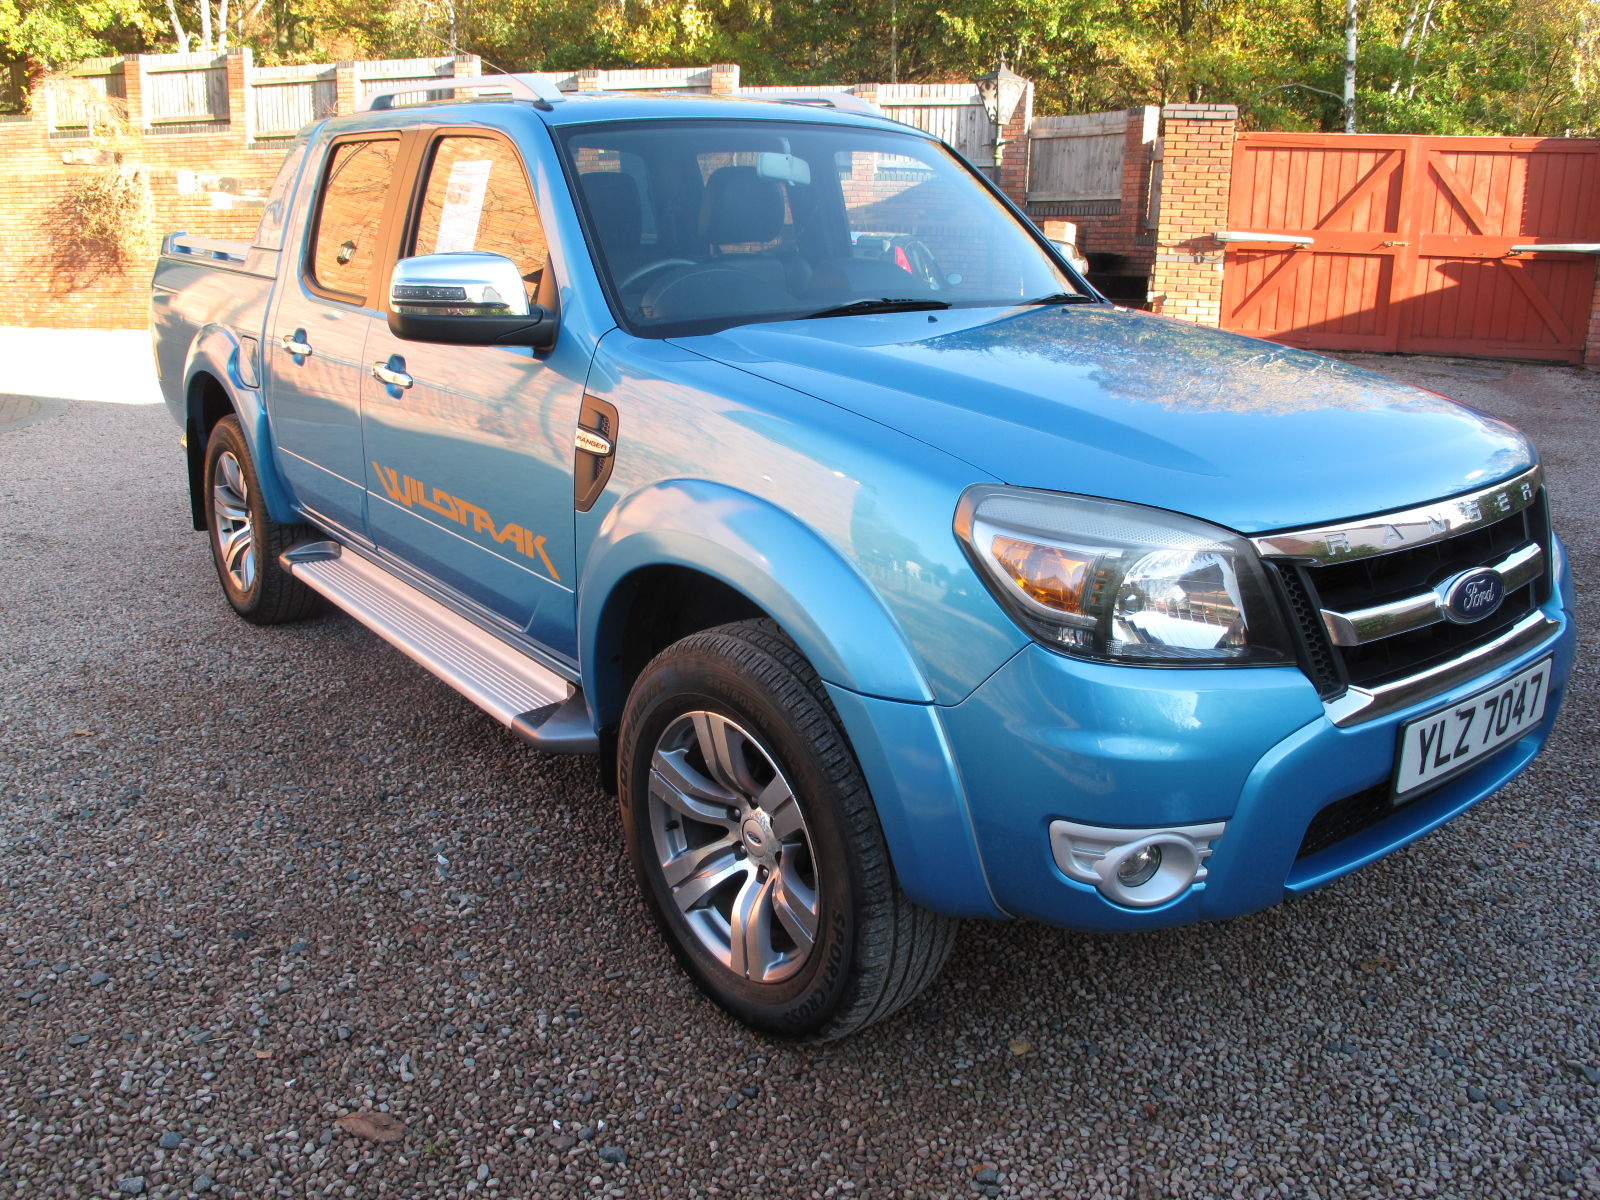 2010 10 Ford Ranger 3.0 TDCi Wildtrak Double Cab Pickup 4×4 4dr ABSOLUTELY STUNNING TRUCK, NO VAT!